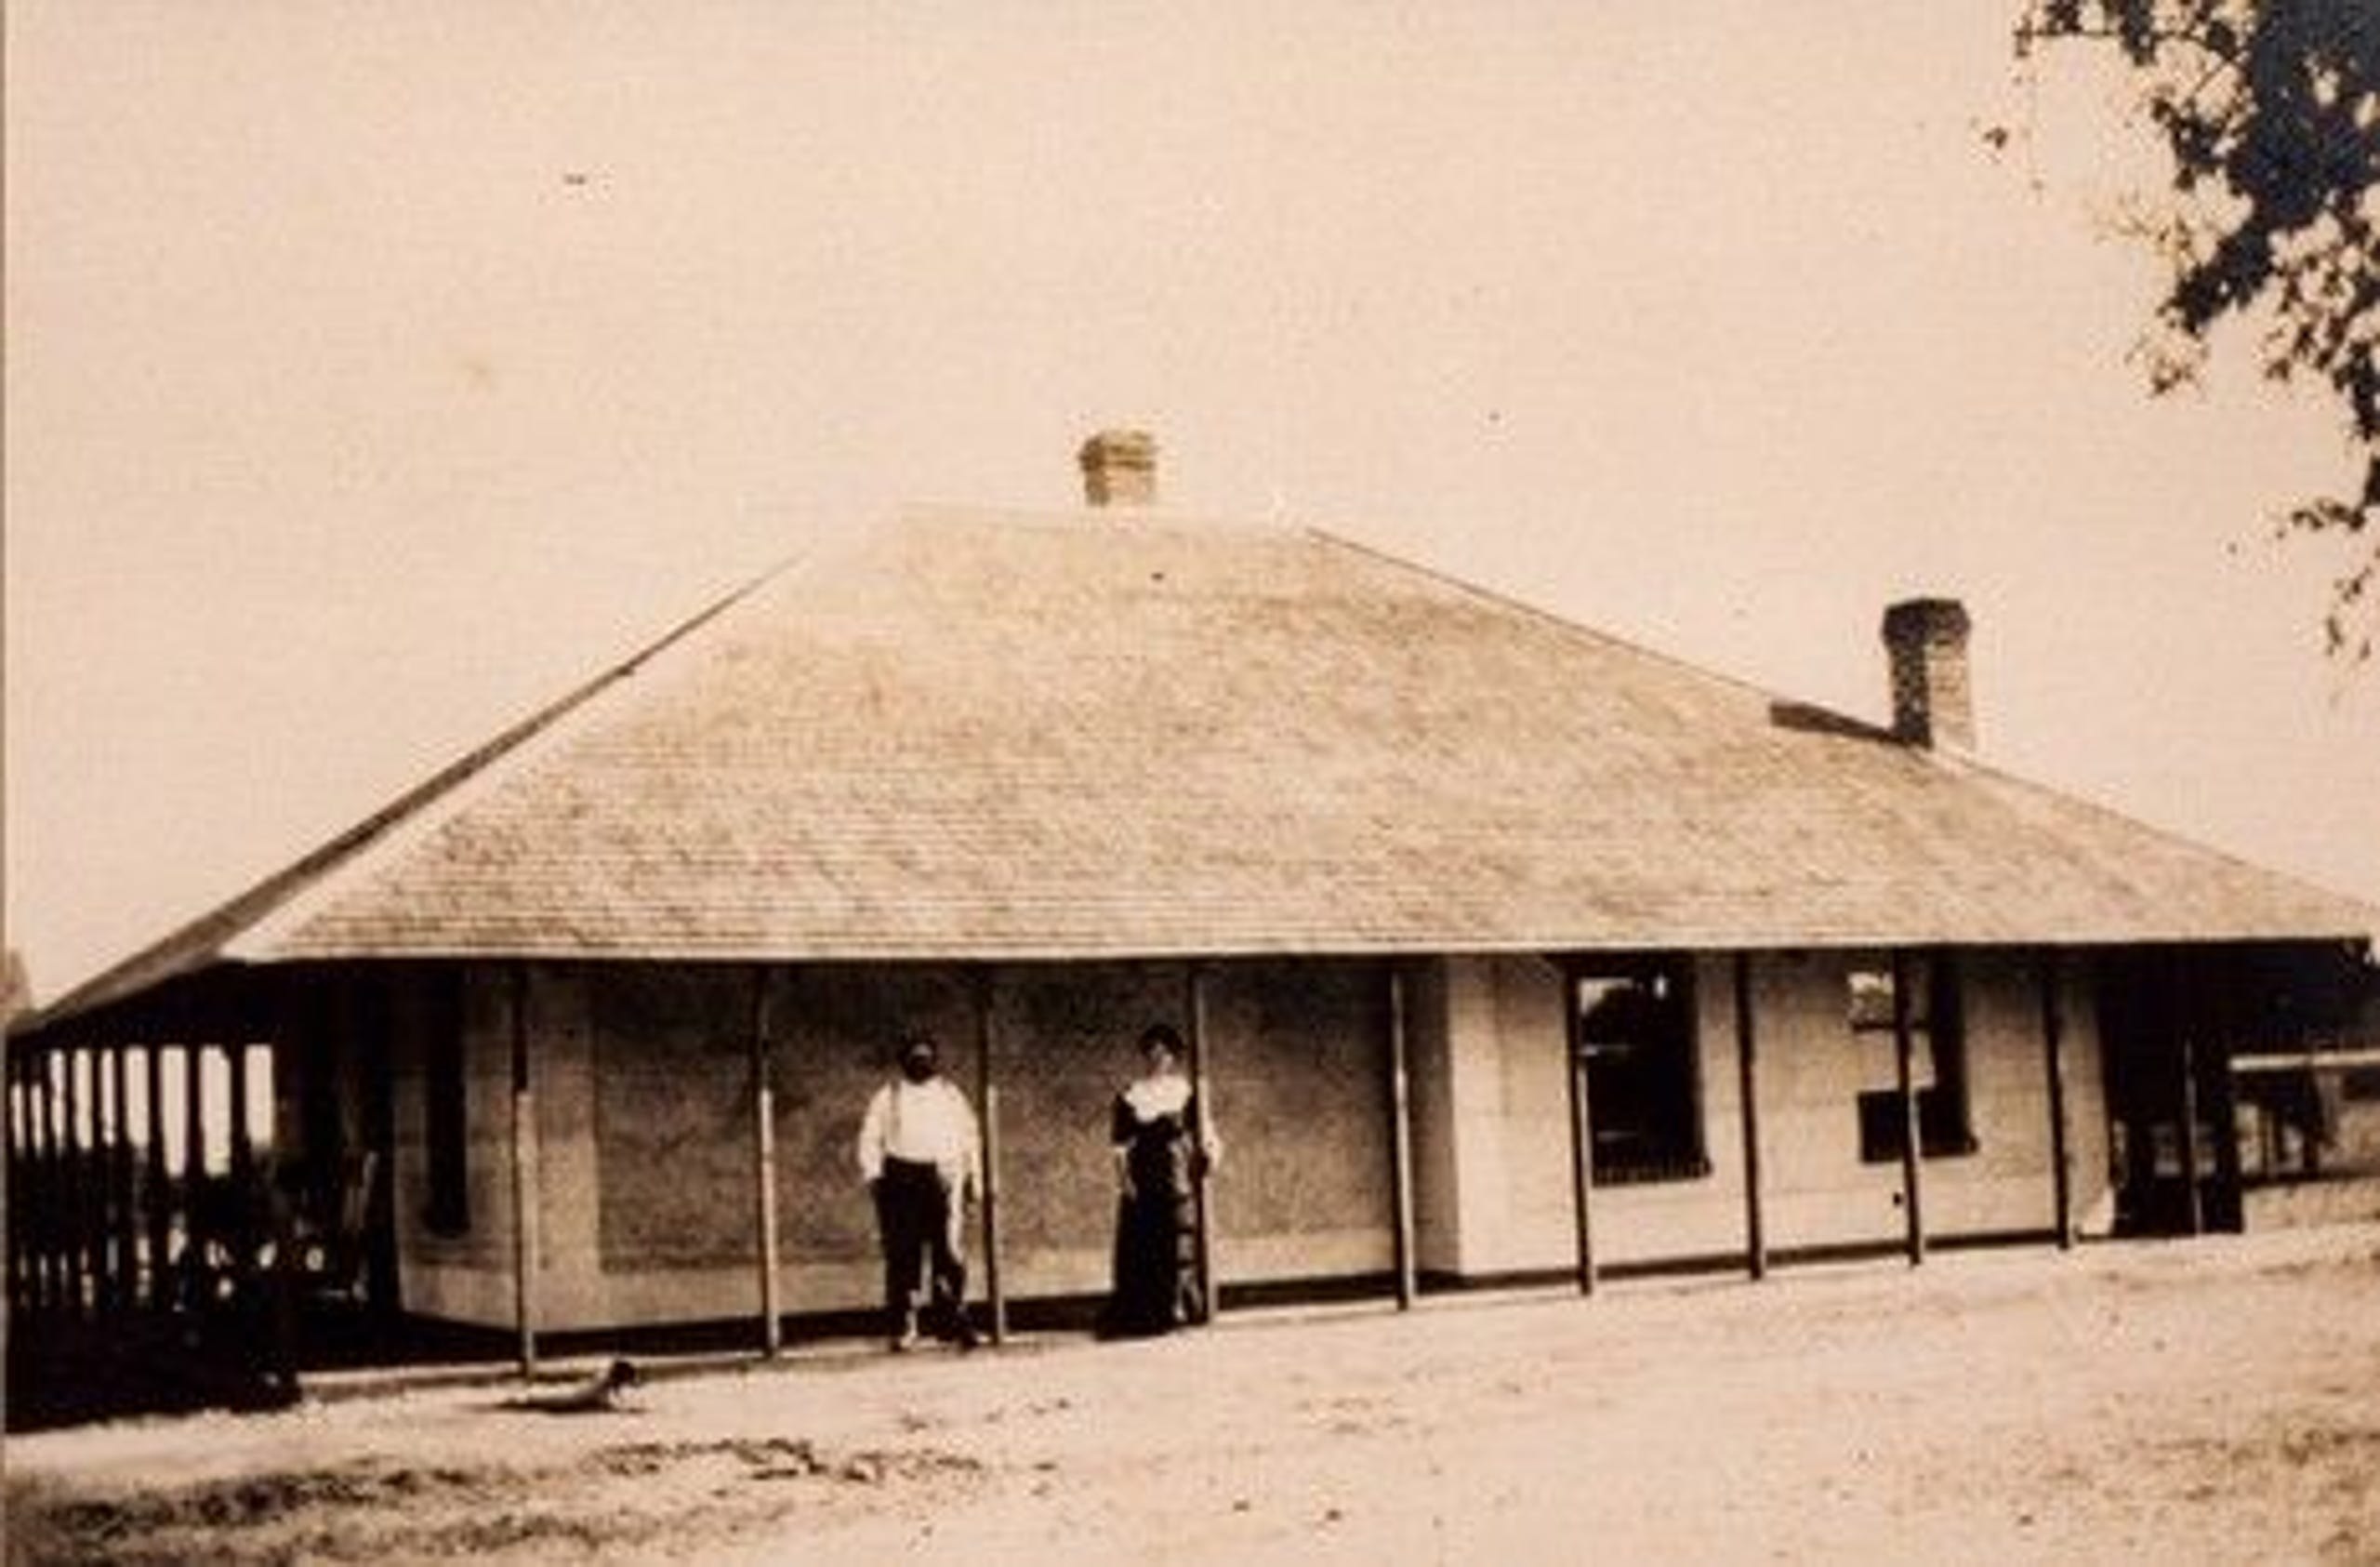 The boarding house as it was in the 1800s.